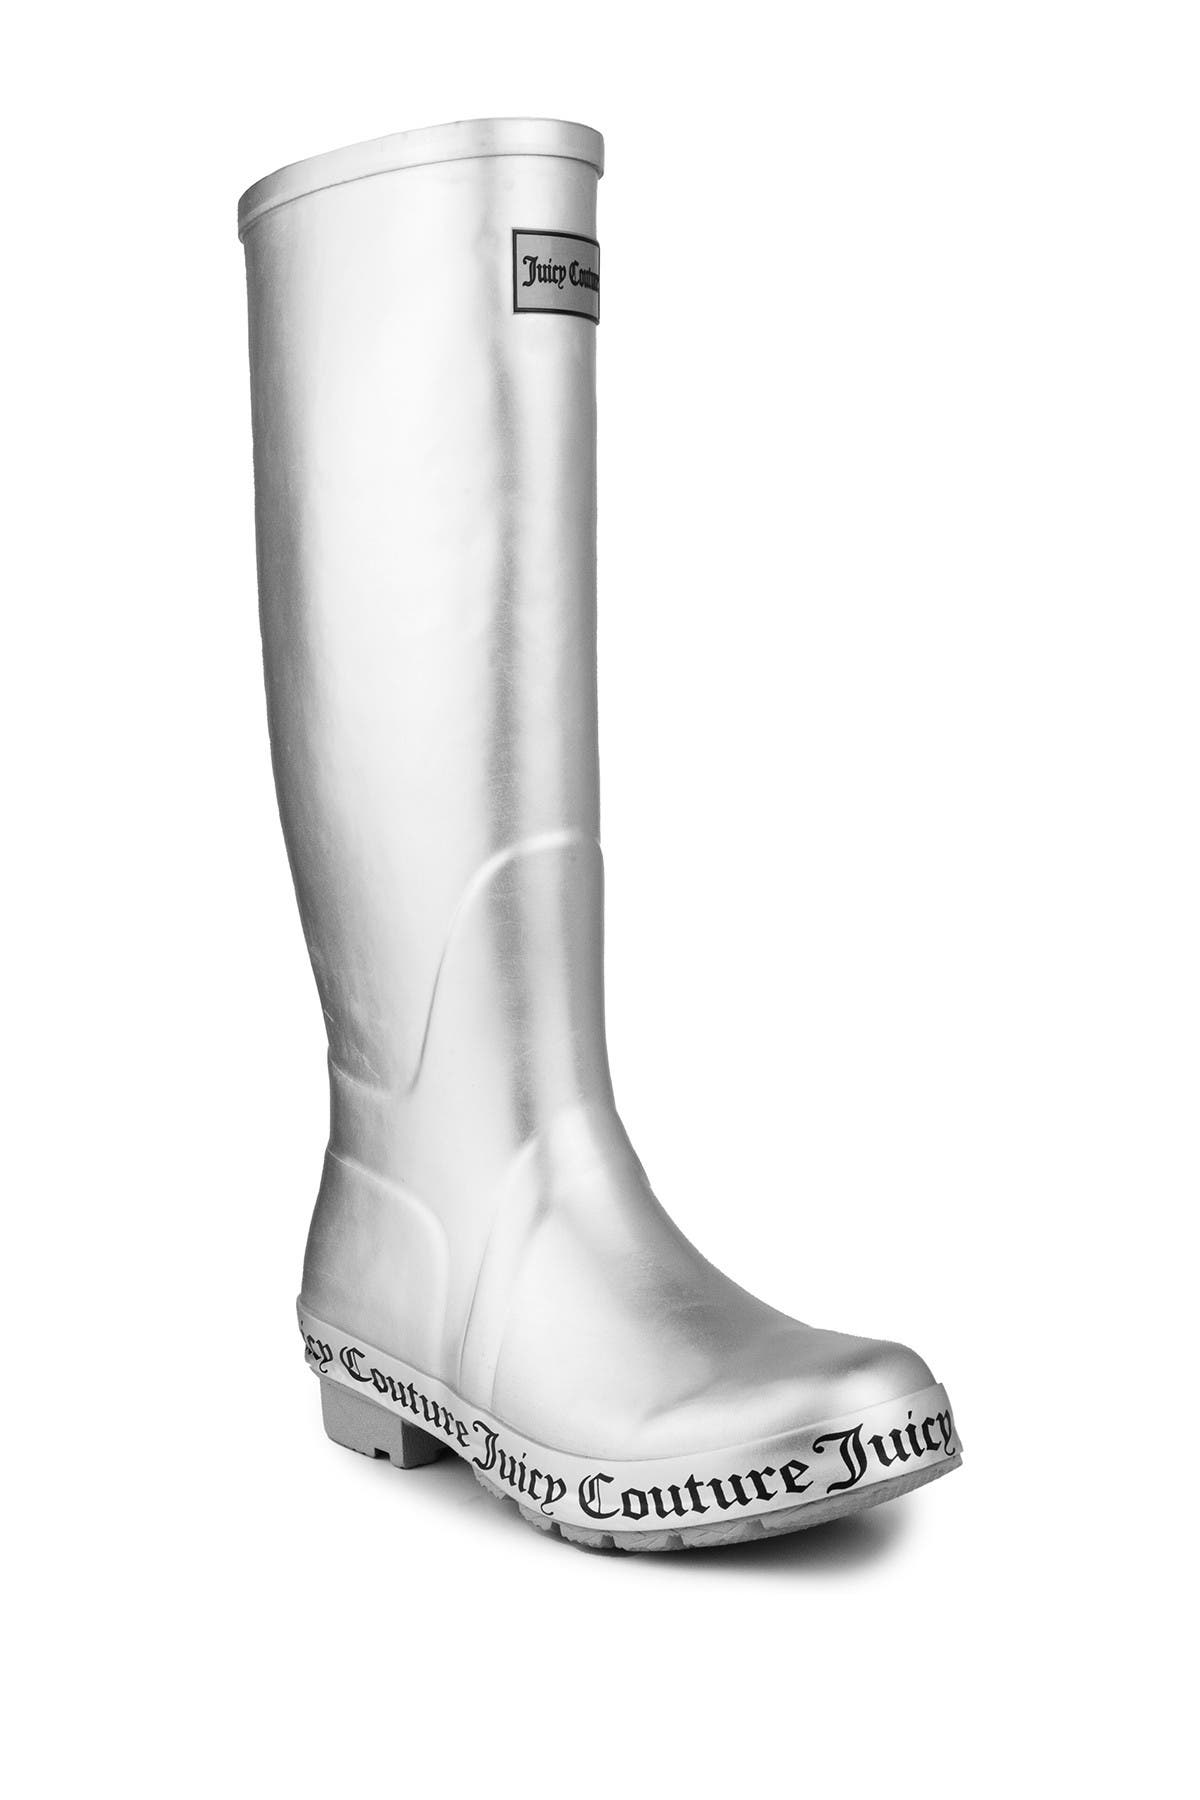 Image of Juicy Couture Tulip Waterproof Logo Fashion Boot